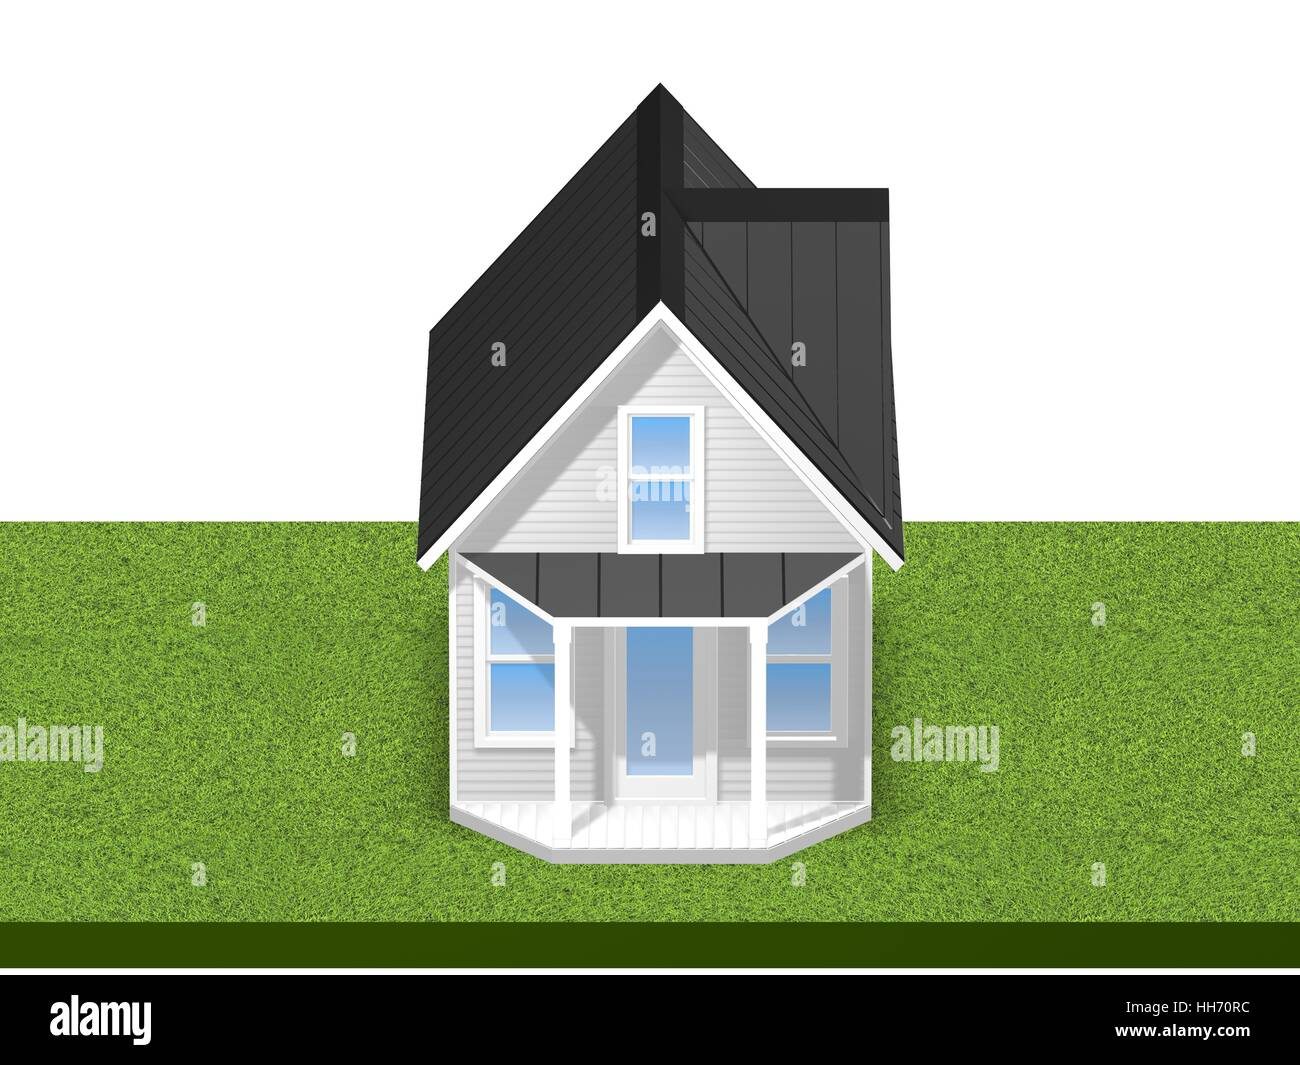 3D Rendered Illustration of a tiny house on a trailer.  House is isolated on a white background. - Stock Image